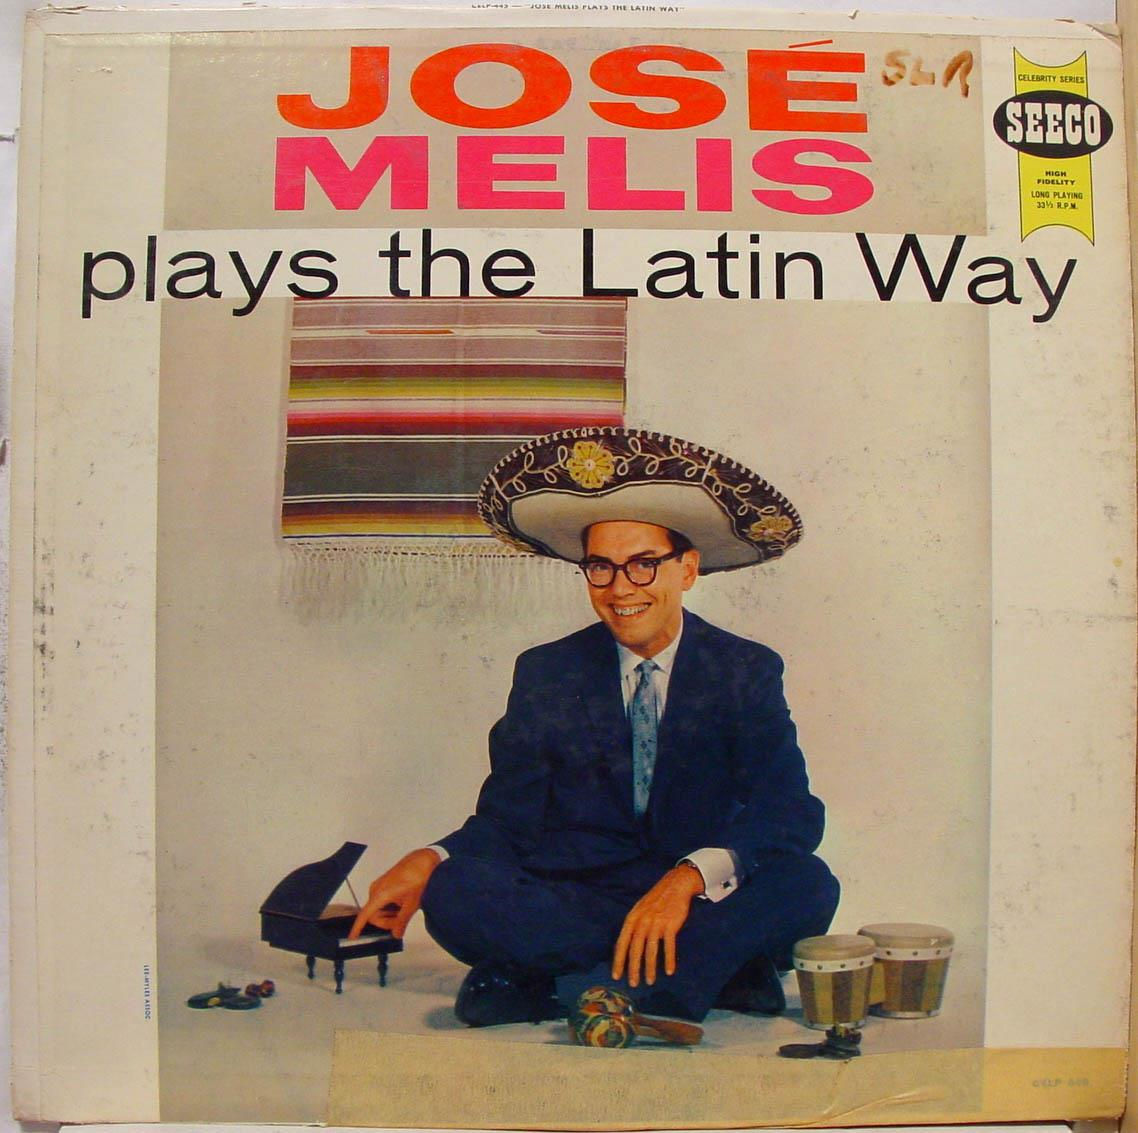 JOSE MELIS - Jose Melis Jose Plays The Latin Way Lp Vg+ Celp 445 Vinyl Record (jose Plays The Latin Way)